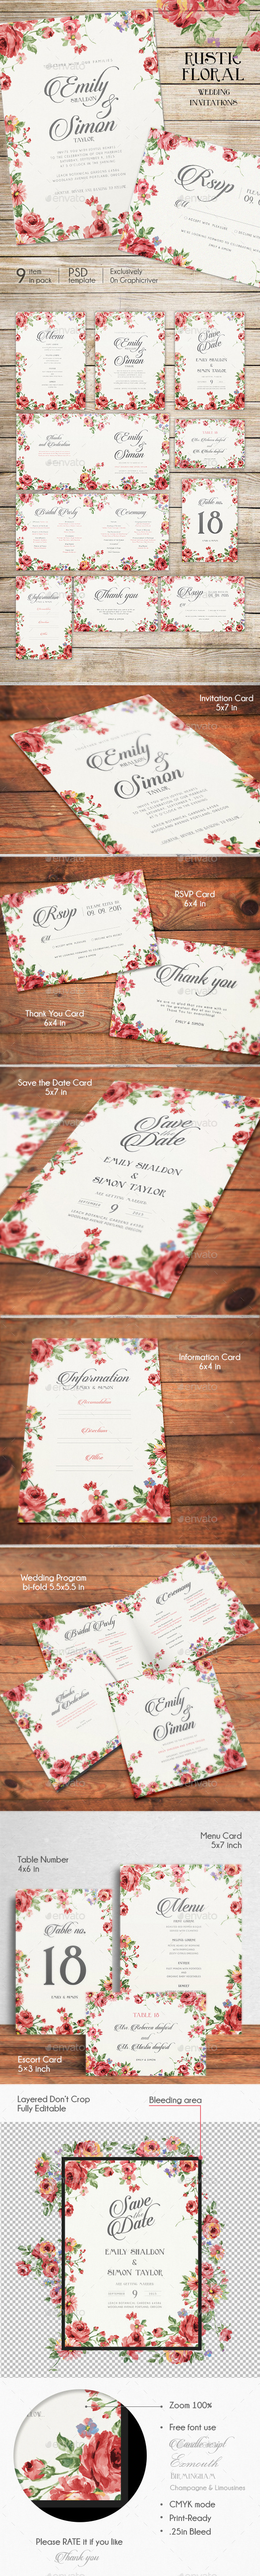 Rustic Floral Wedding Invitations - Weddings Cards & Invites